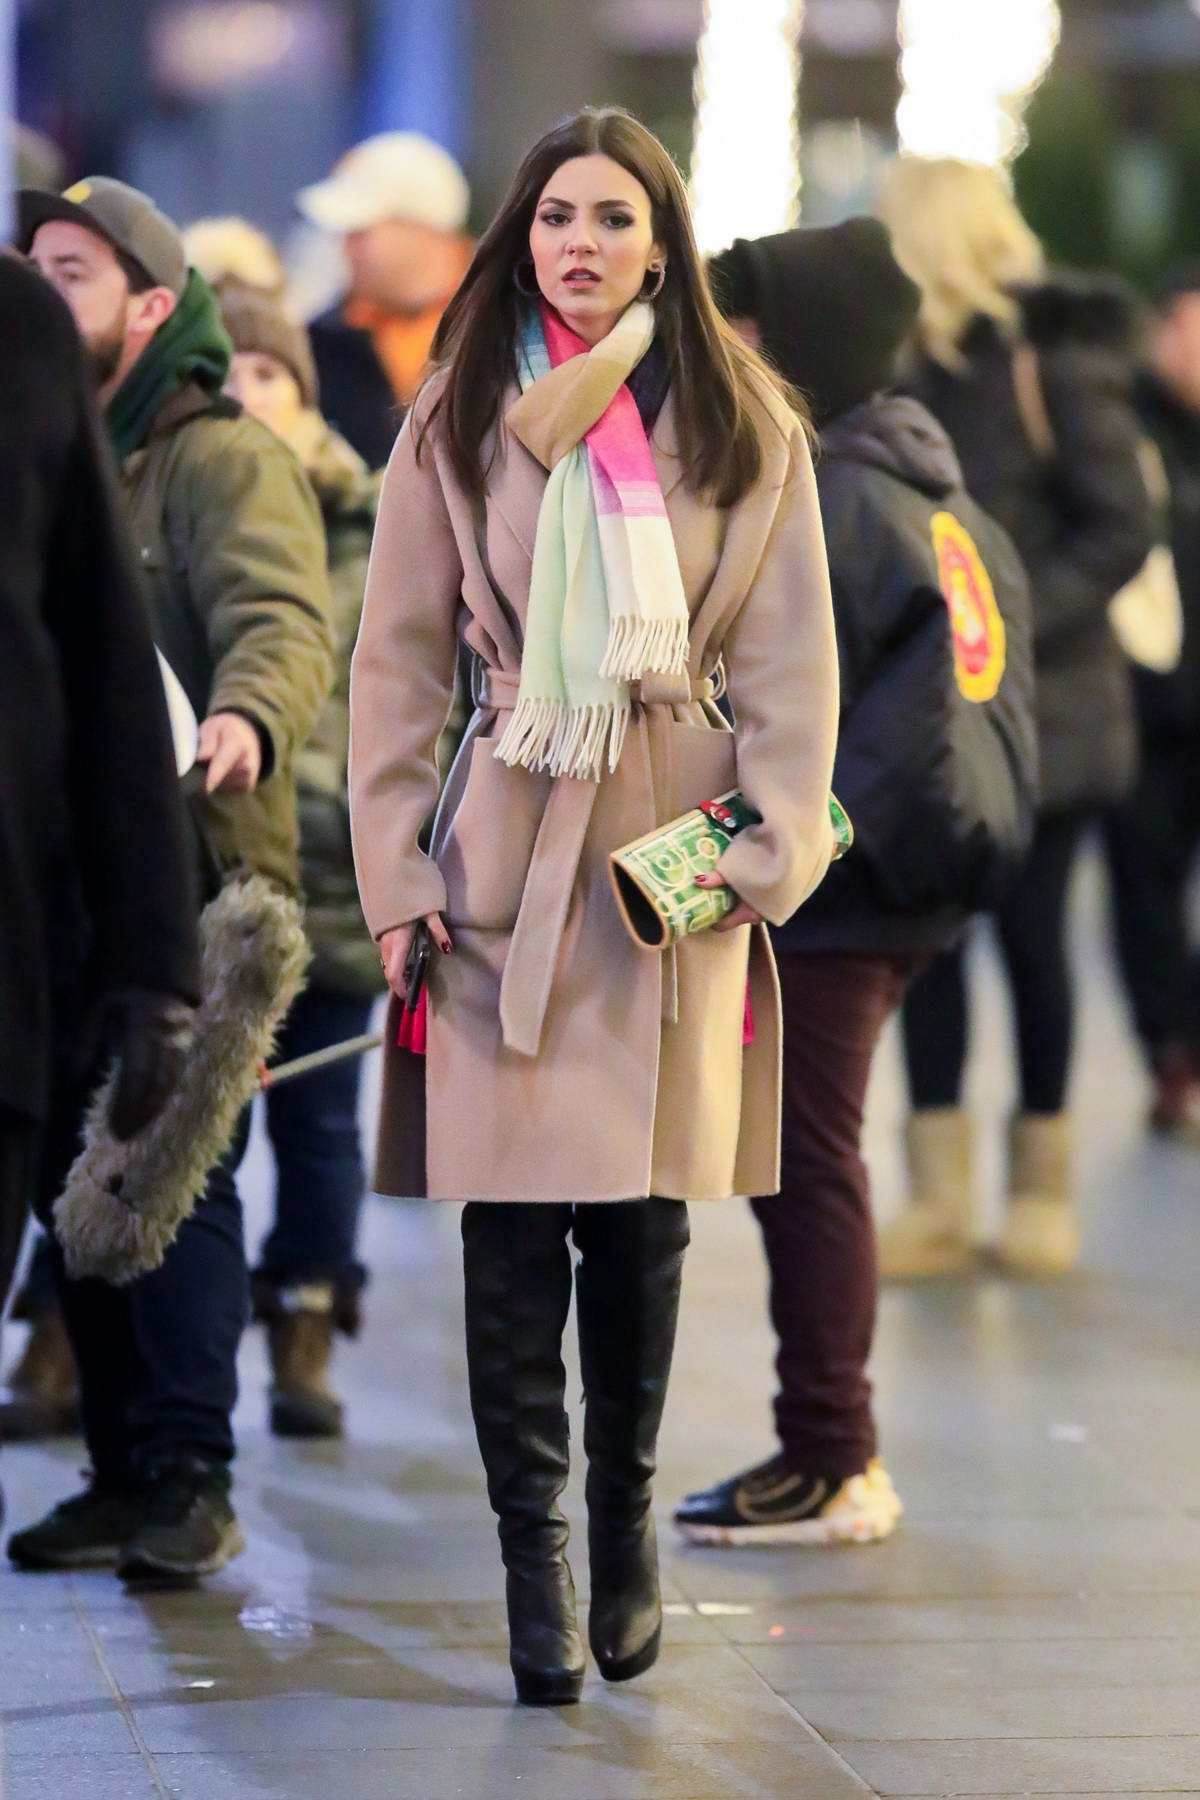 Victoria Justice and Matthew Daddario seen filming 'Push' in Midtown in New York City